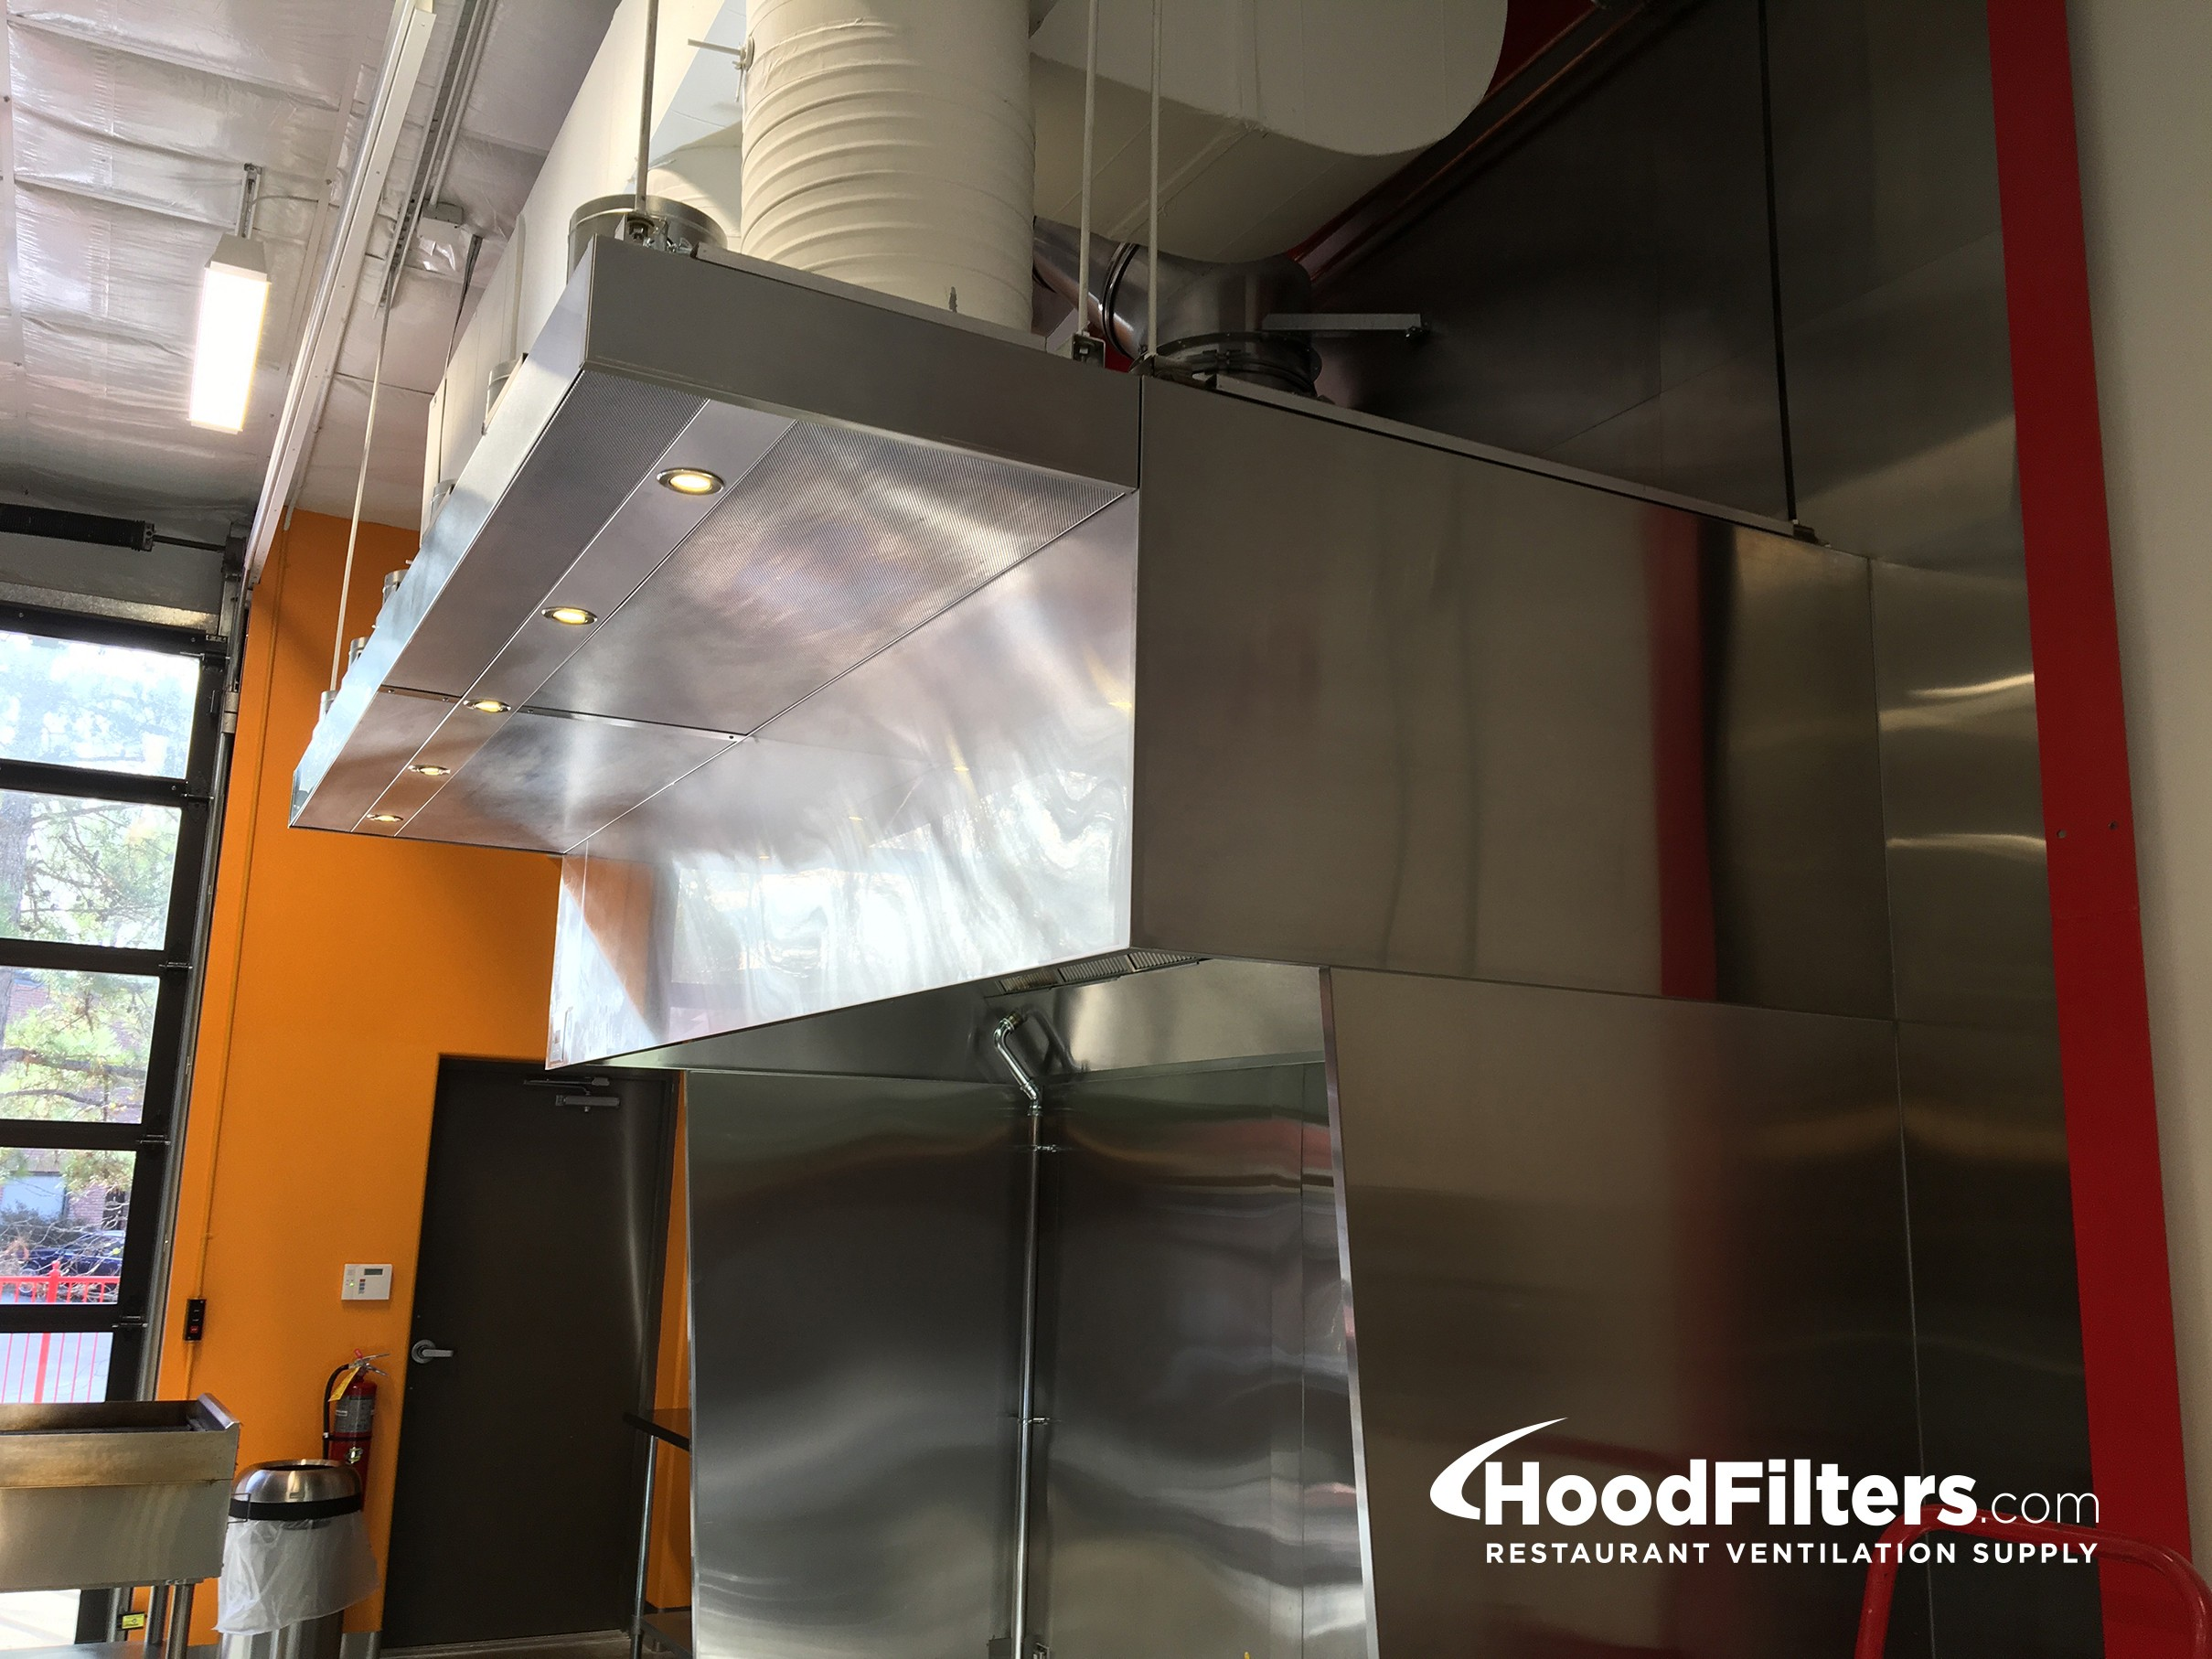 Wiring Diagram For Hood On Wiring Diagram For Commercial Kitchen Hood